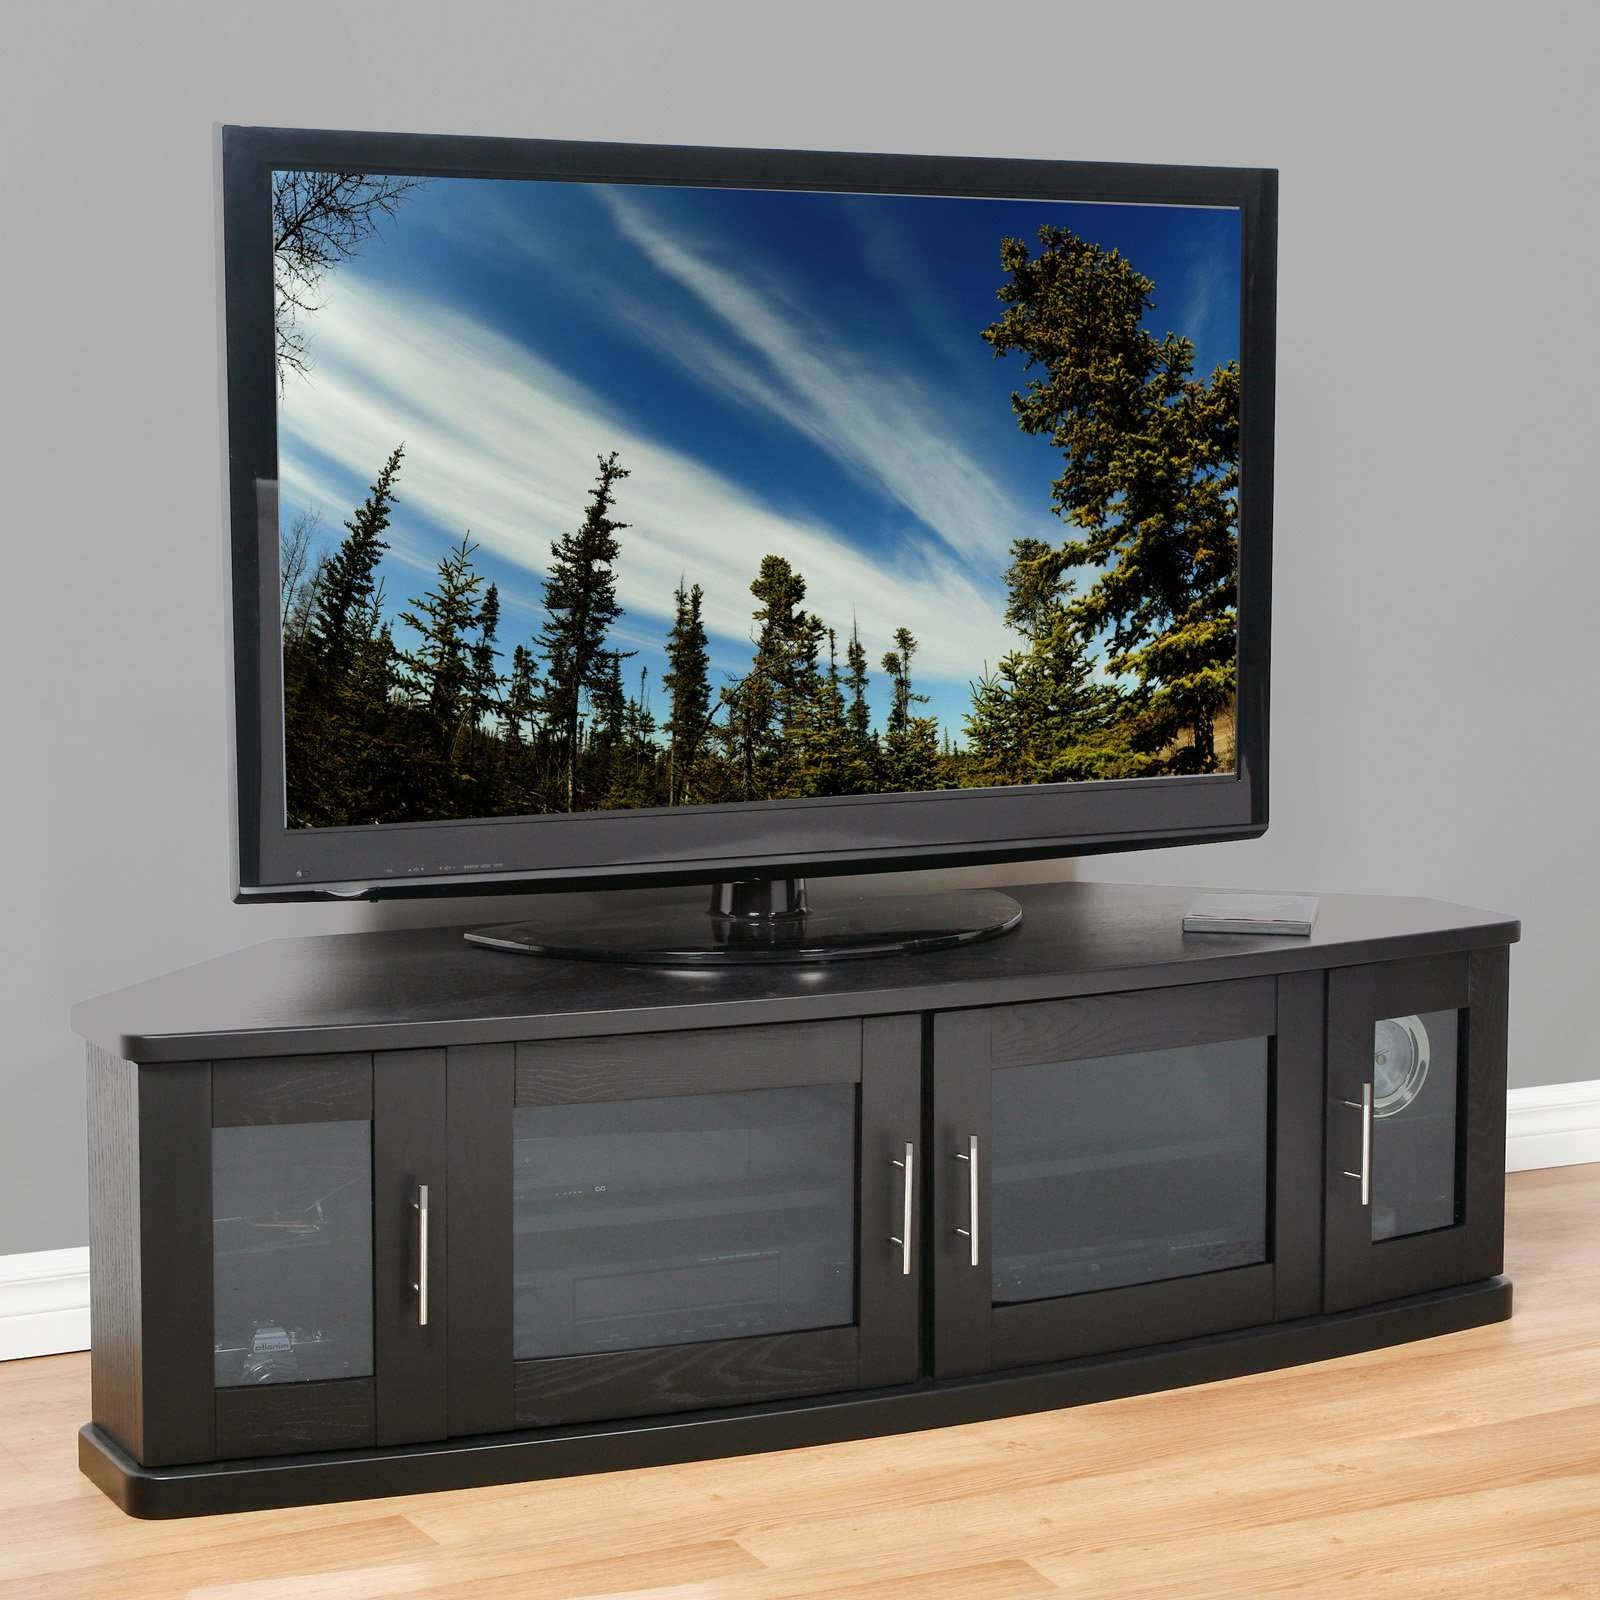 Modern Black Wooden Tv Stand With Frosted Glass Doors Of Dazzling Within Modern 60 Inch Tv Stands (View 18 of 20)